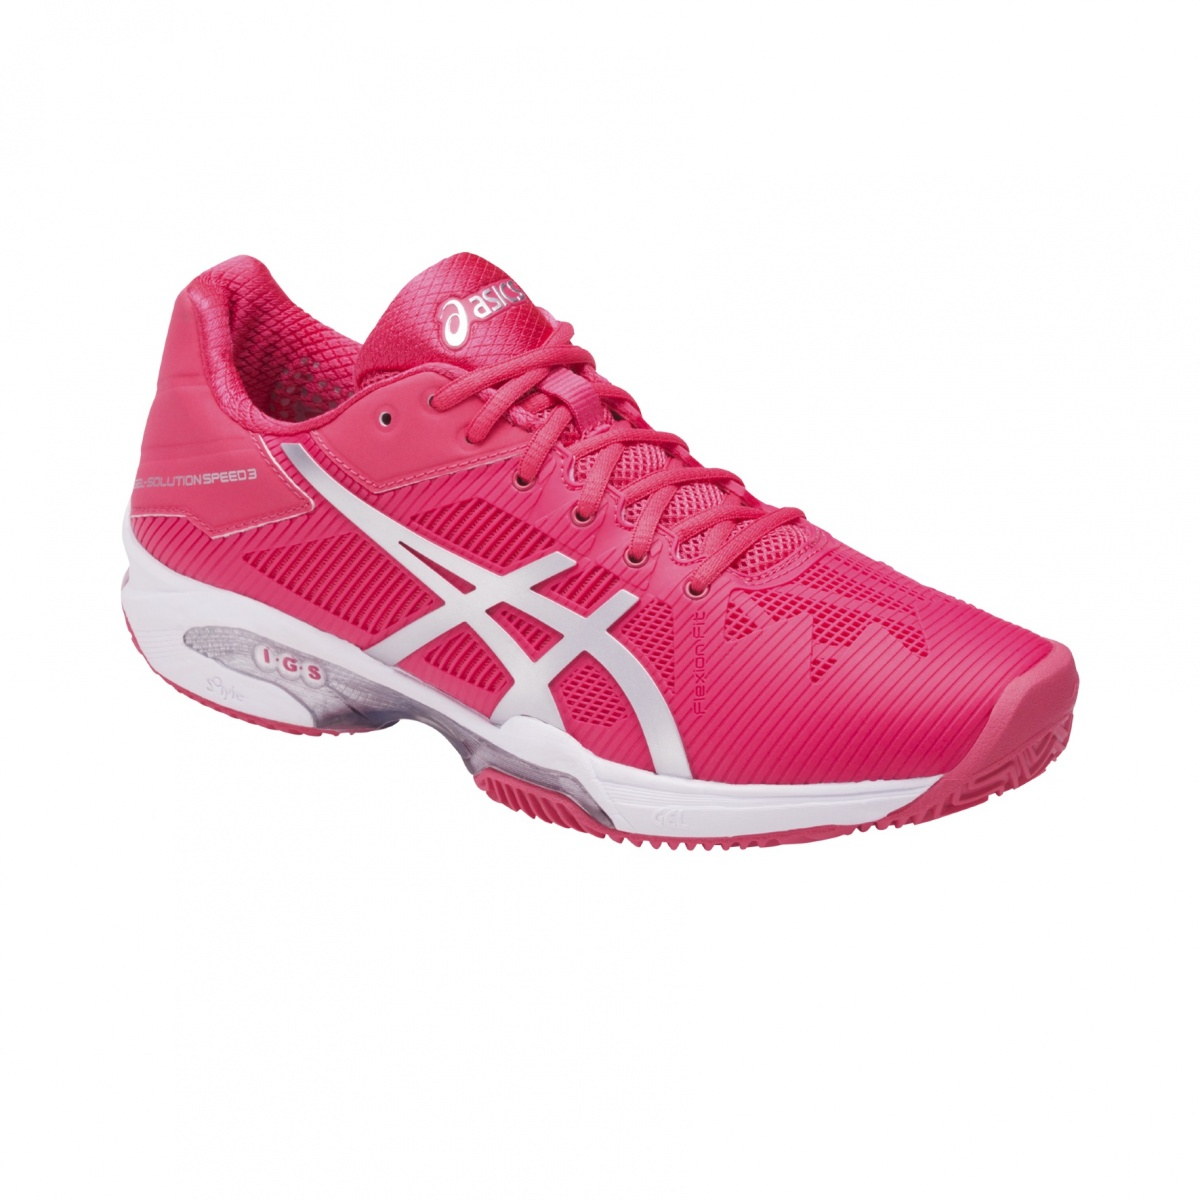 Asics Gel Solution Speed 3 2017 indigo/pink Tennisschuhe Damen DRxoS7Q7H